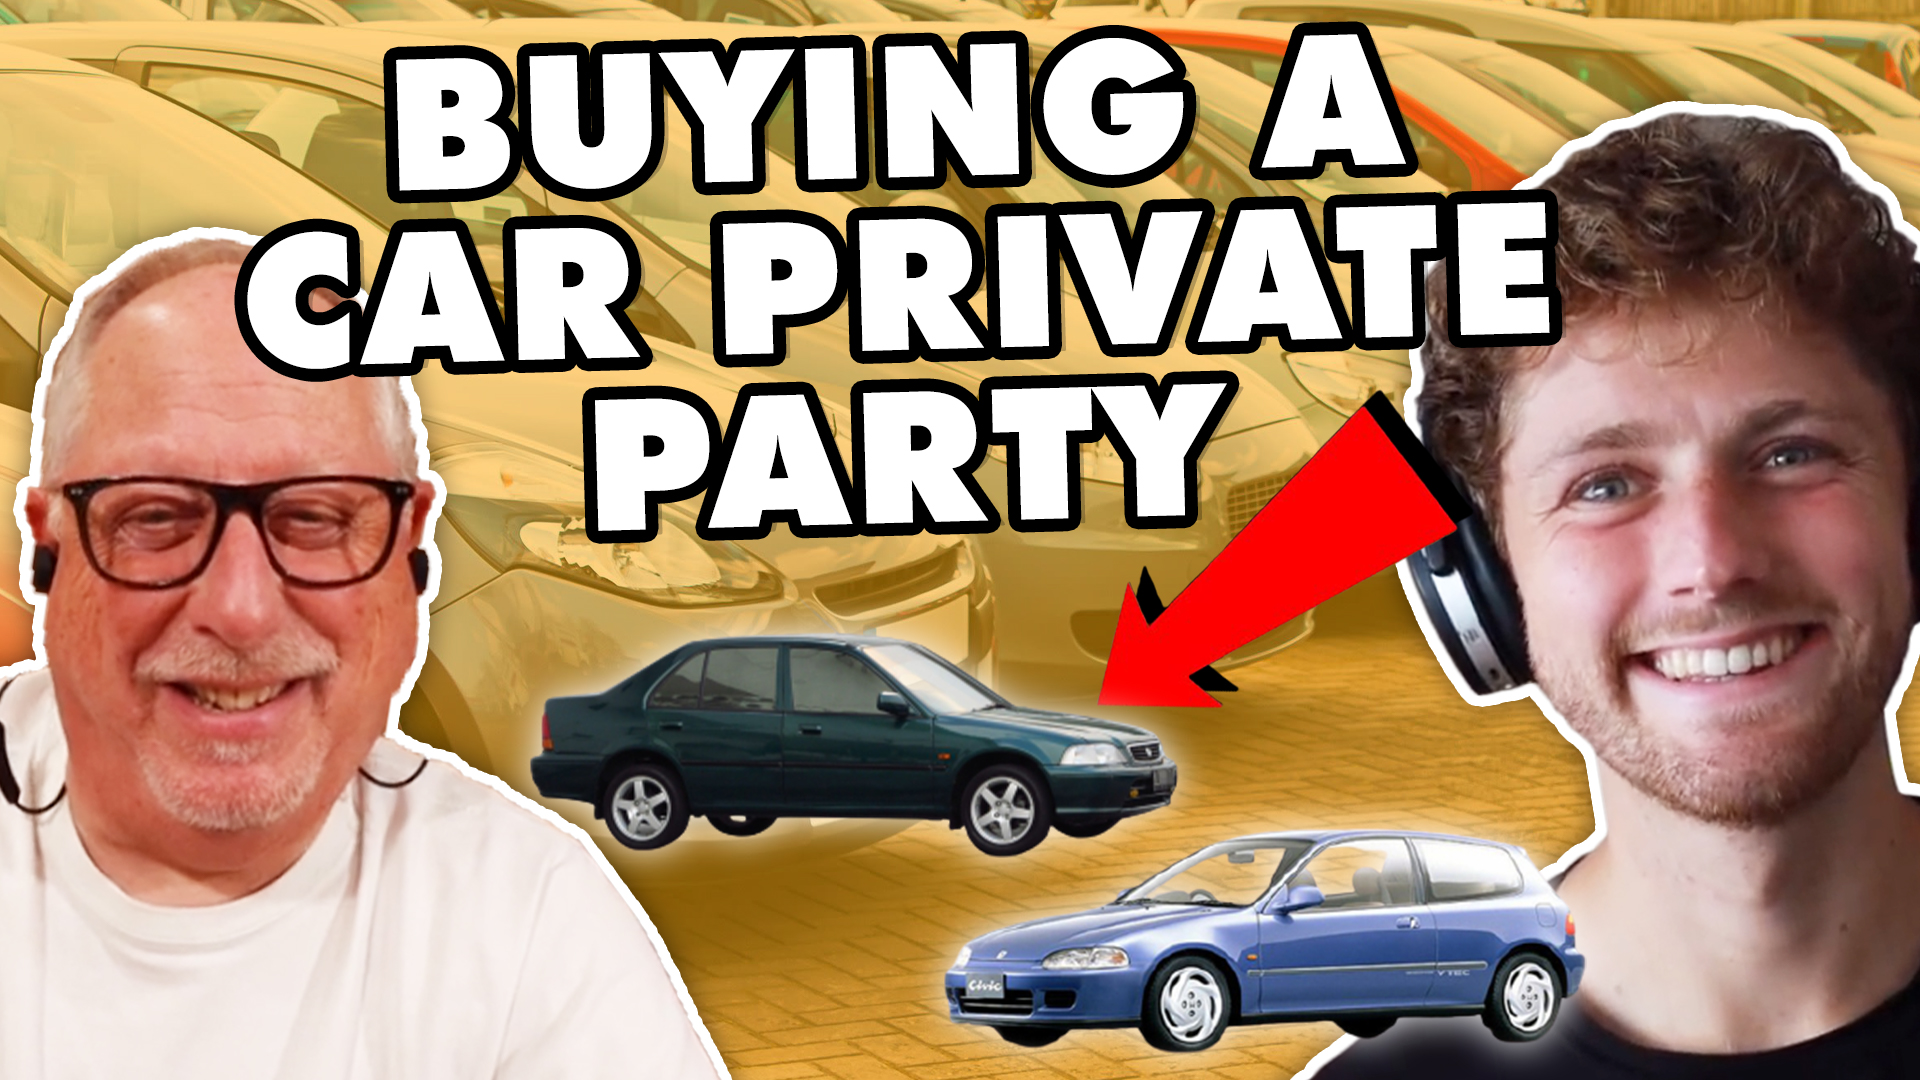 4 Tips For Buying A Car On Craigslist Your Auto Advocate